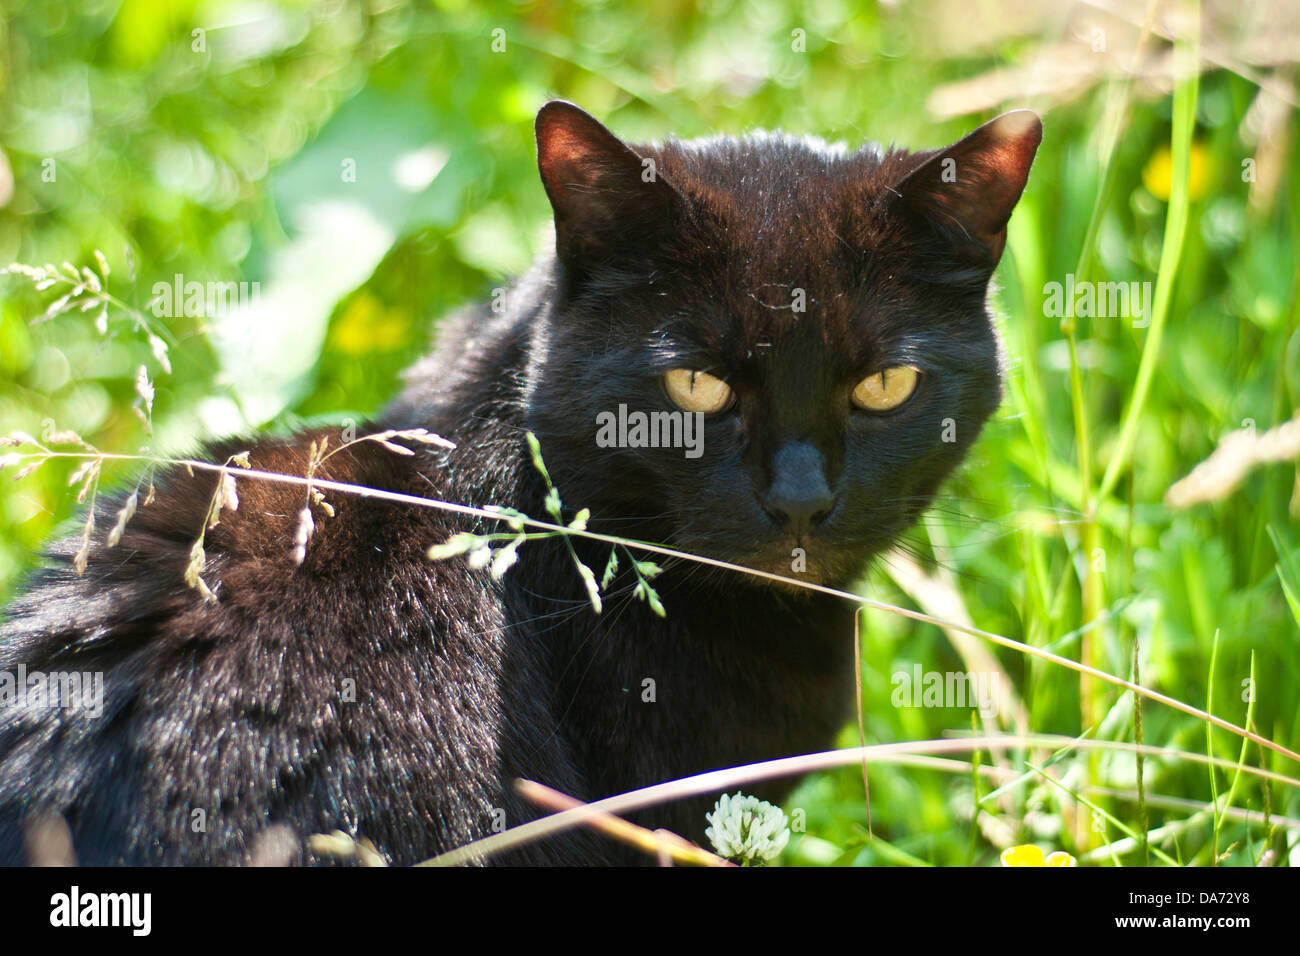 A black cat with piercing yellow eyes sits staring in a garden of green grass - Stock Image